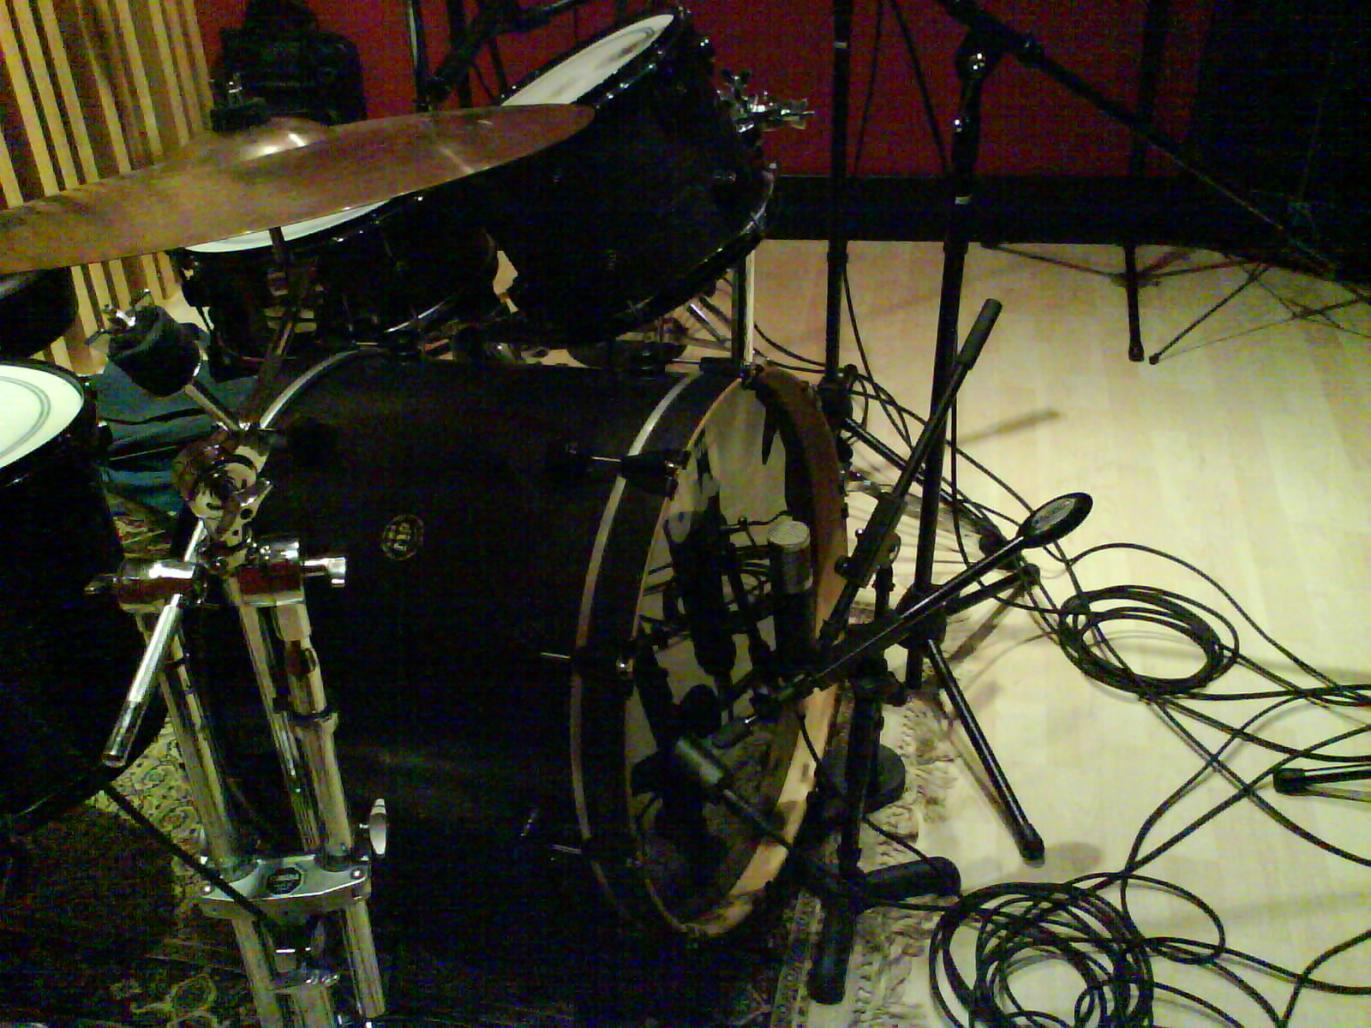 Recording Drums In A Small Dead Room